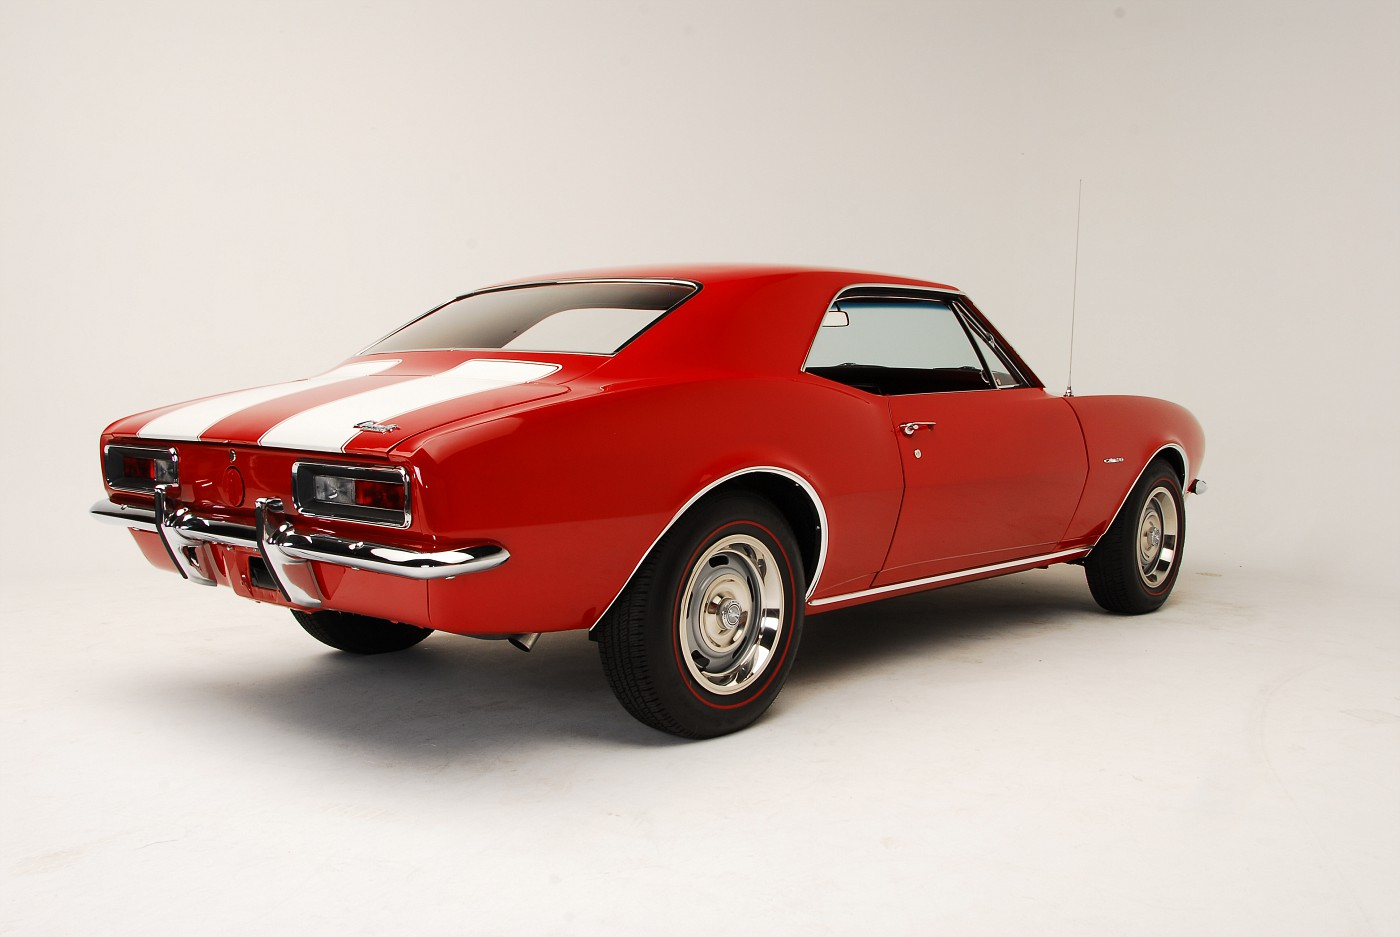 1967 Camaro Z28 rear three-quarter view